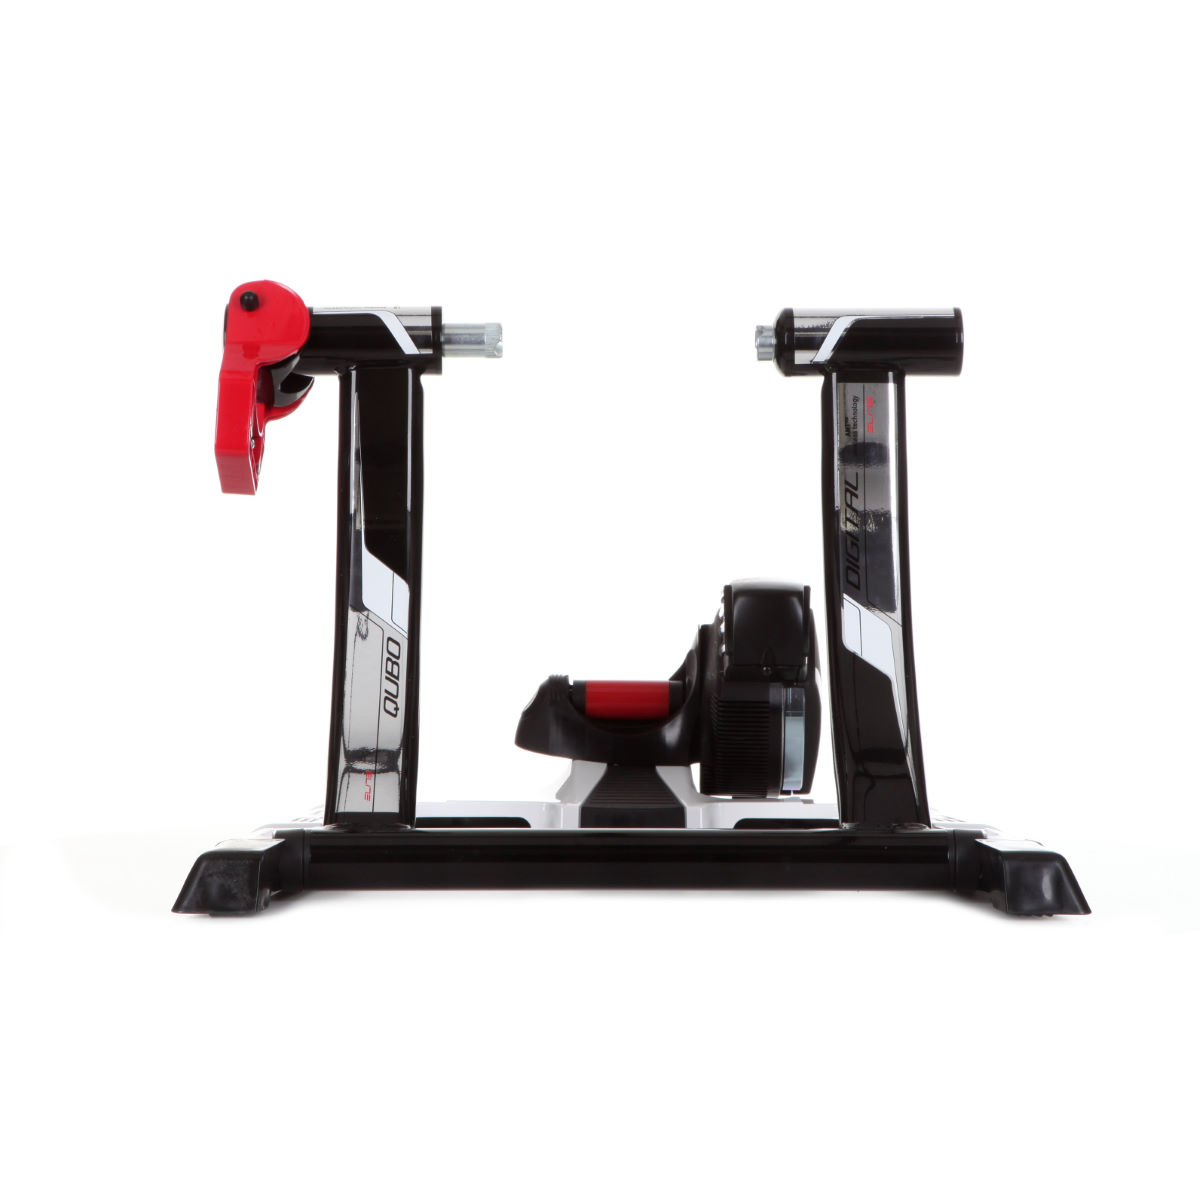 Home Trainer Elite Qubo Digital (sans fil) - Taille unique